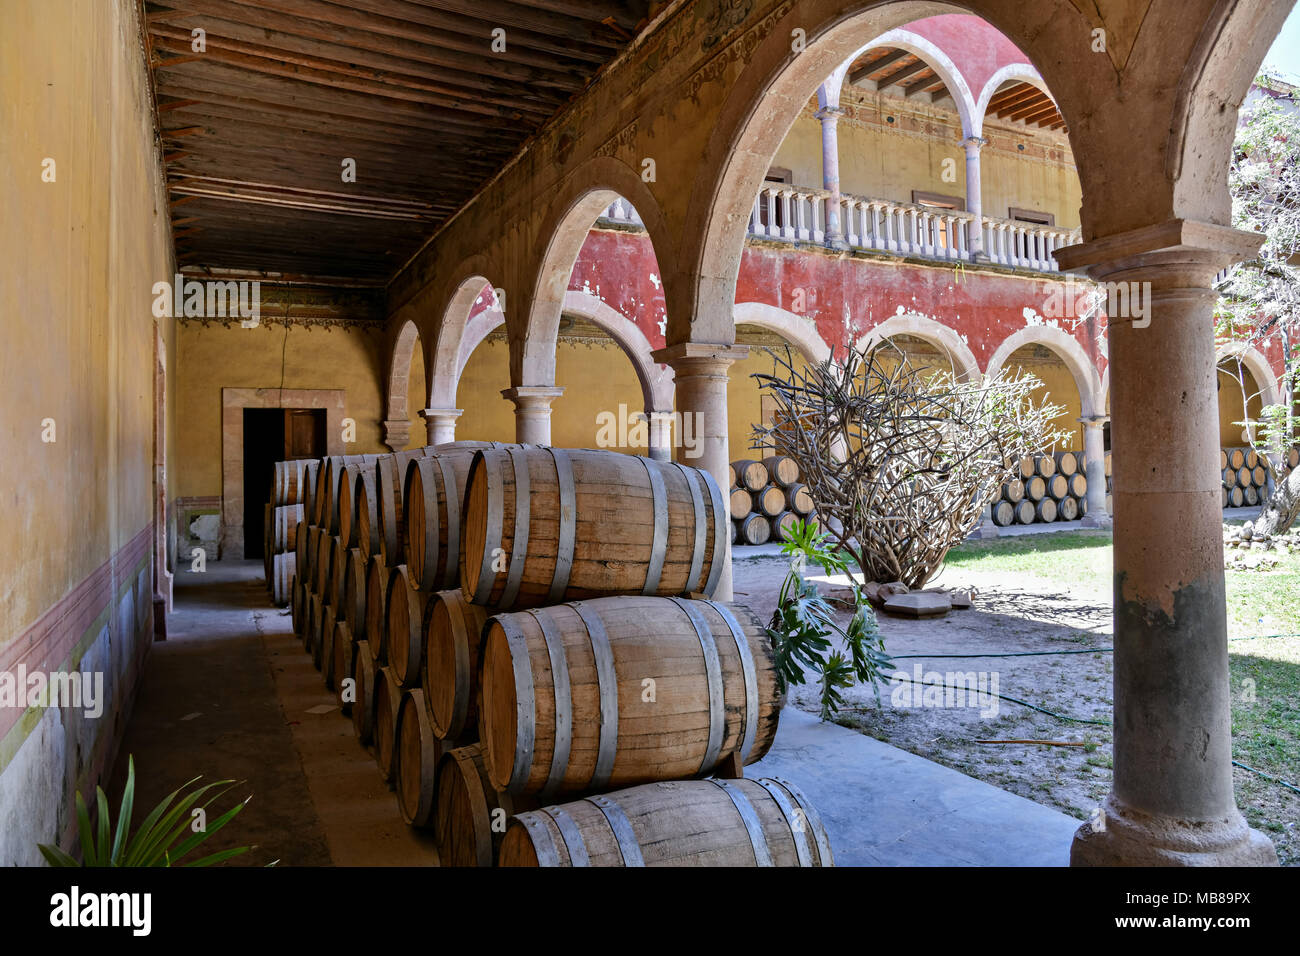 Oak barrels filled with Mezcal age under the derelict arches of the Hacienda de Jaral de Berrio in Jaral de Berrios, Guanajuato, Mexico. The abandoned Jaral de Berrio hacienda was once the largest in Mexico and housed over 6,000 people on the property and is credited with creating Mescal. - Stock Image